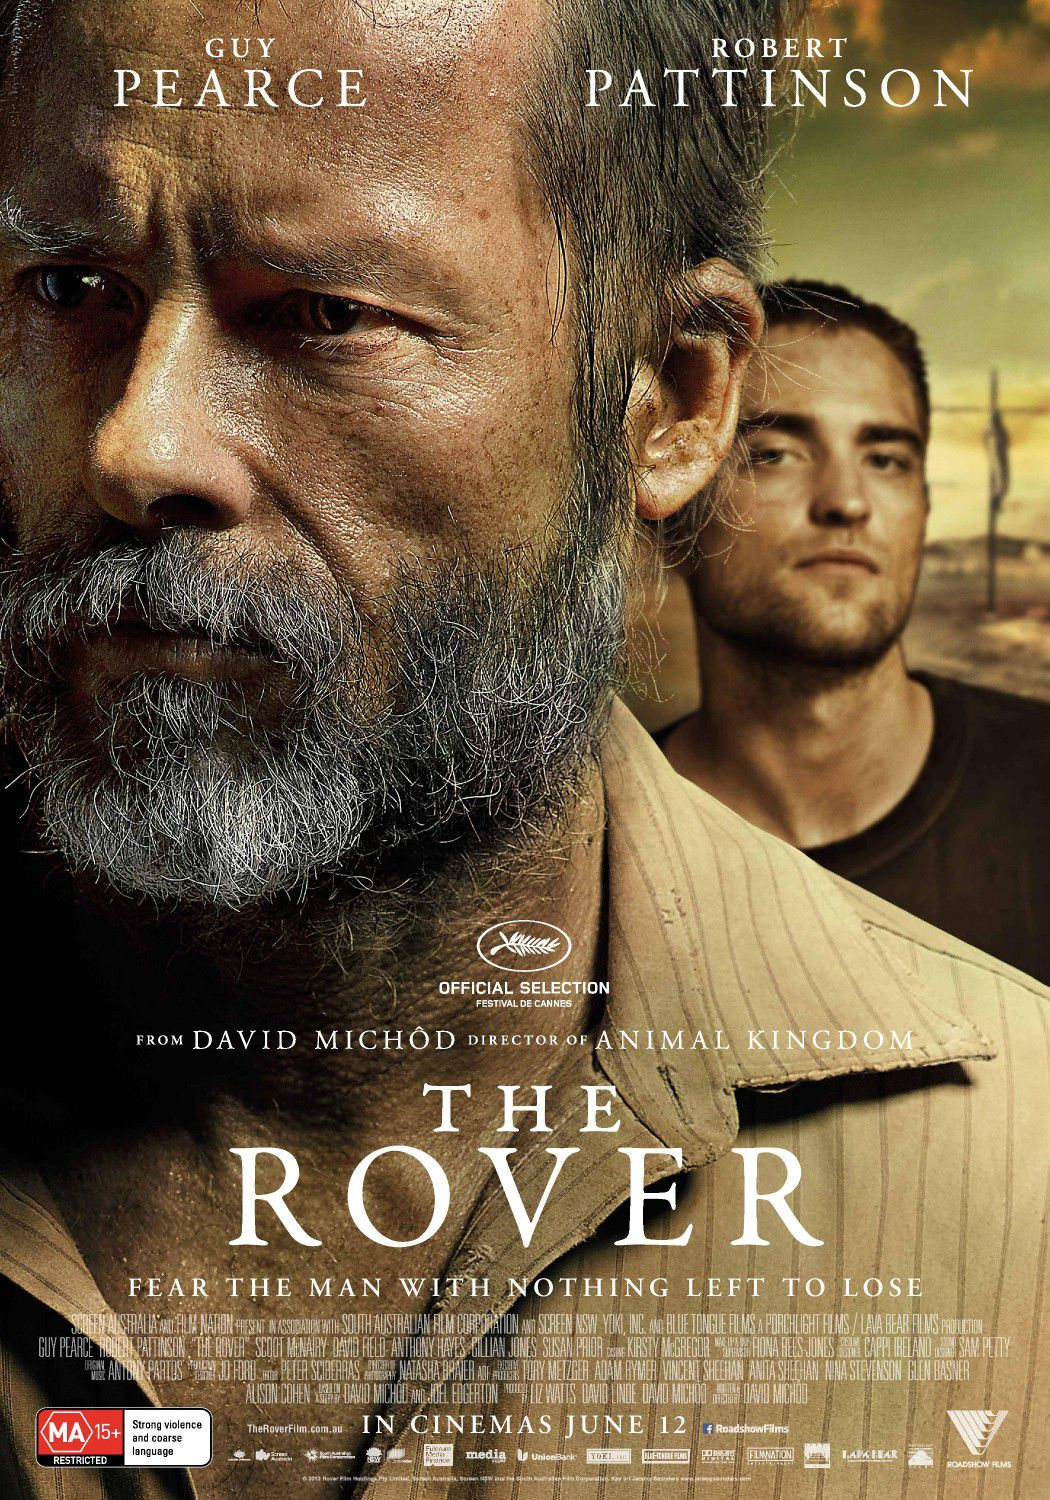 The Rover - Guy Pearce, Robert Pattinson - film poster